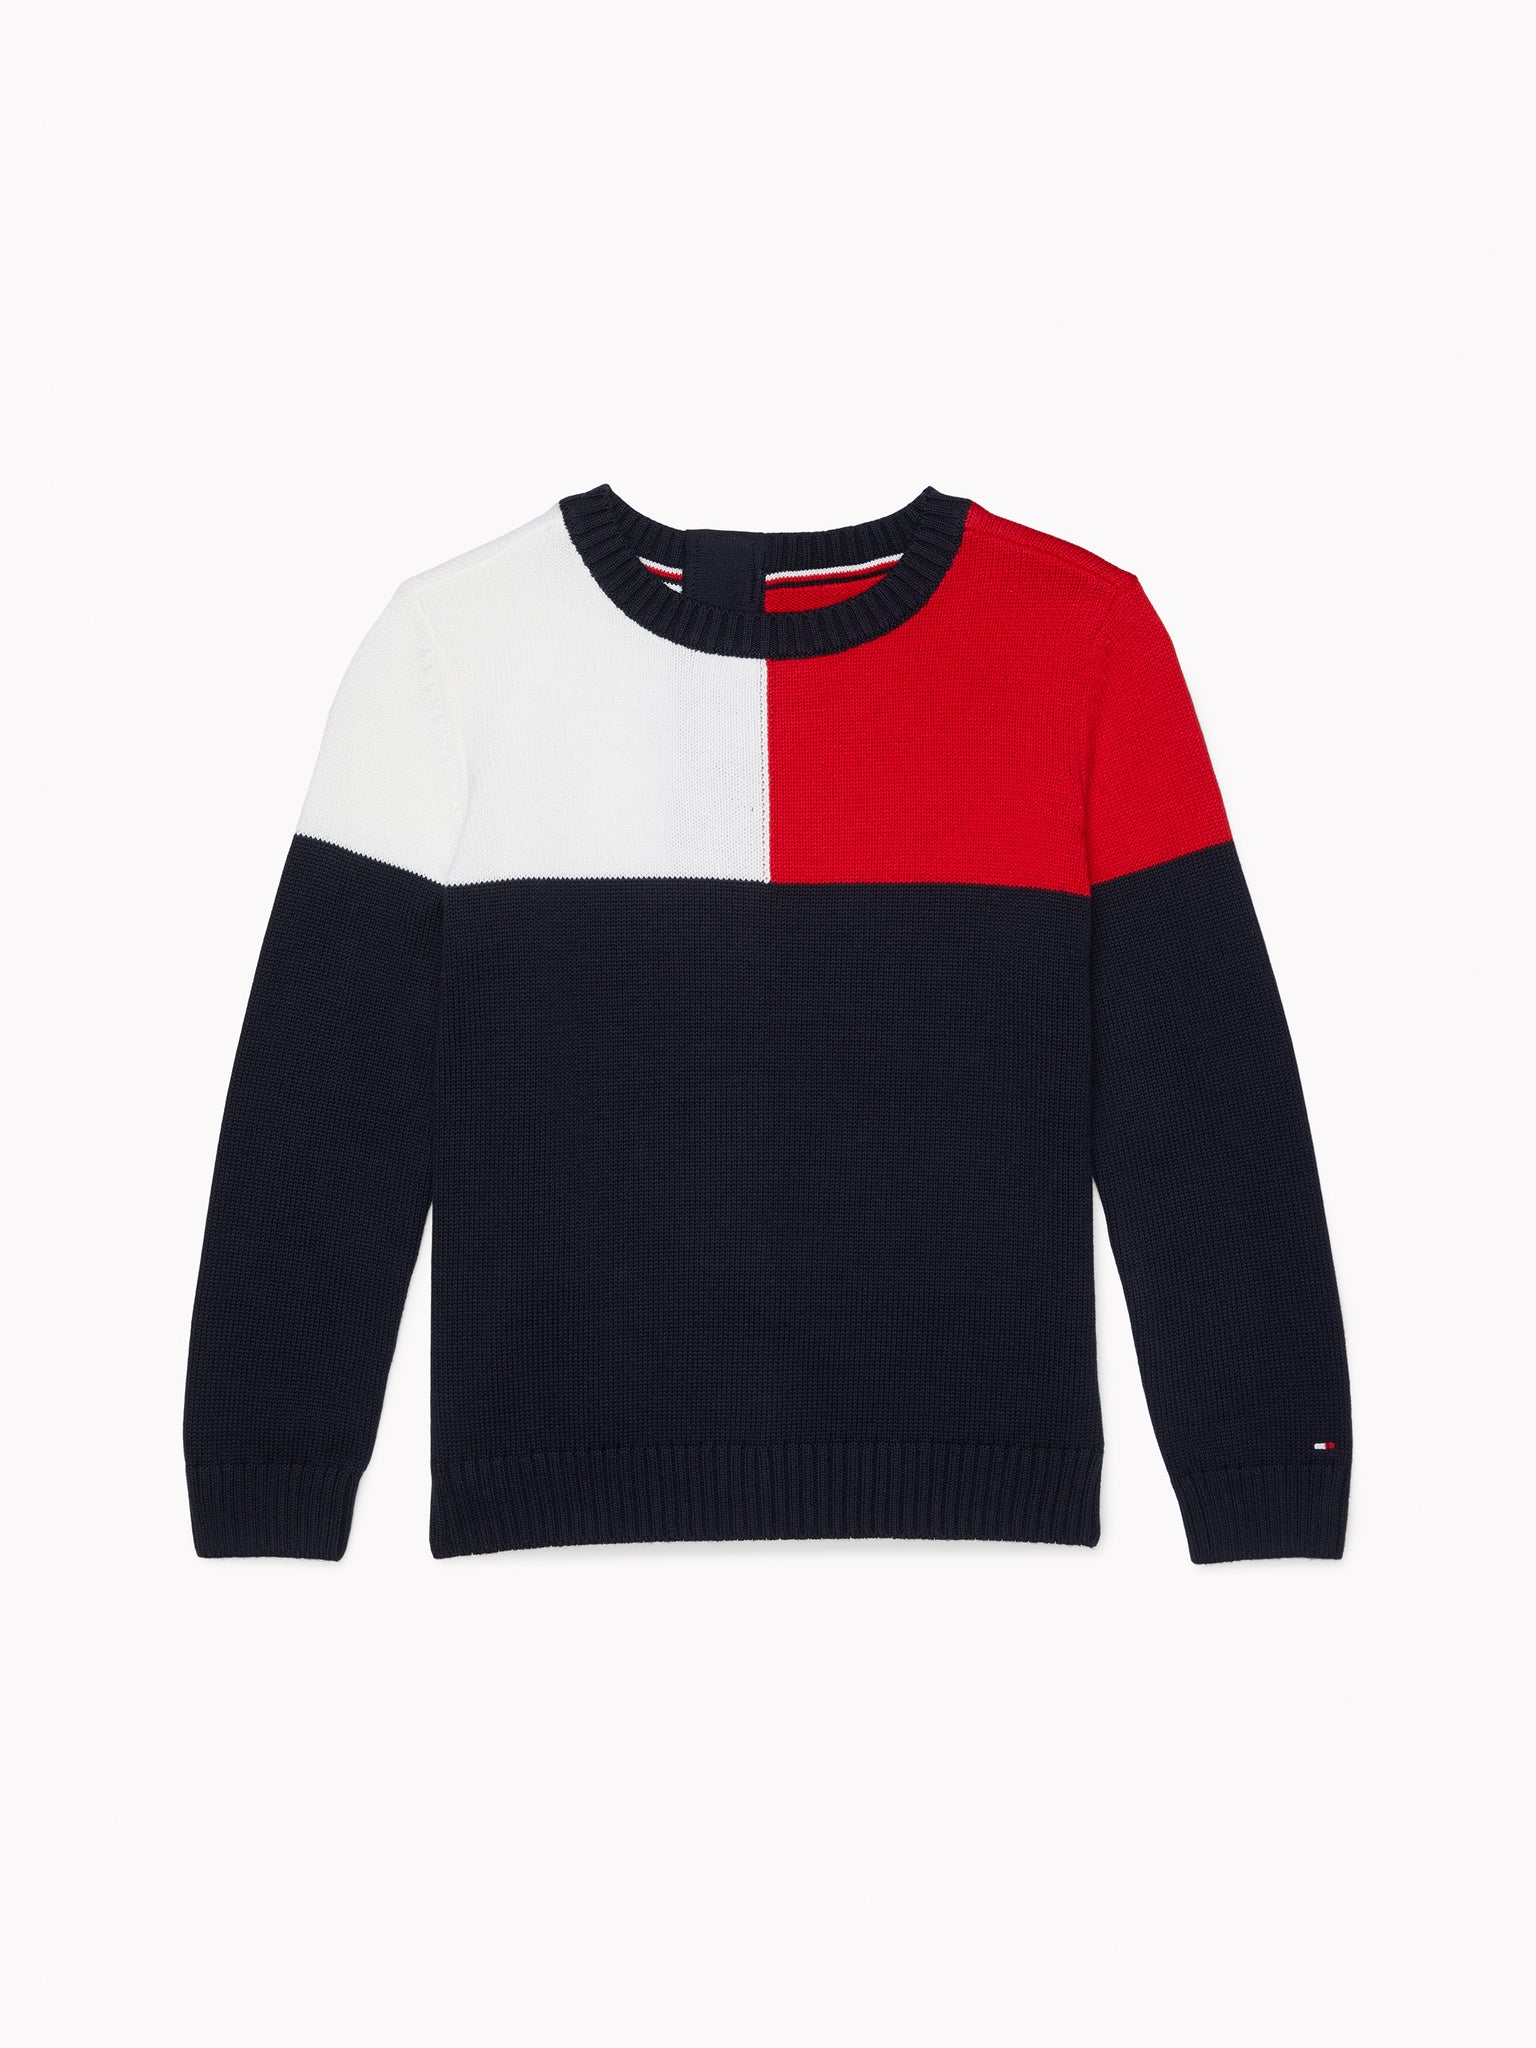 Seated TH Sweatshirt (Boys) - Navy/White/Red